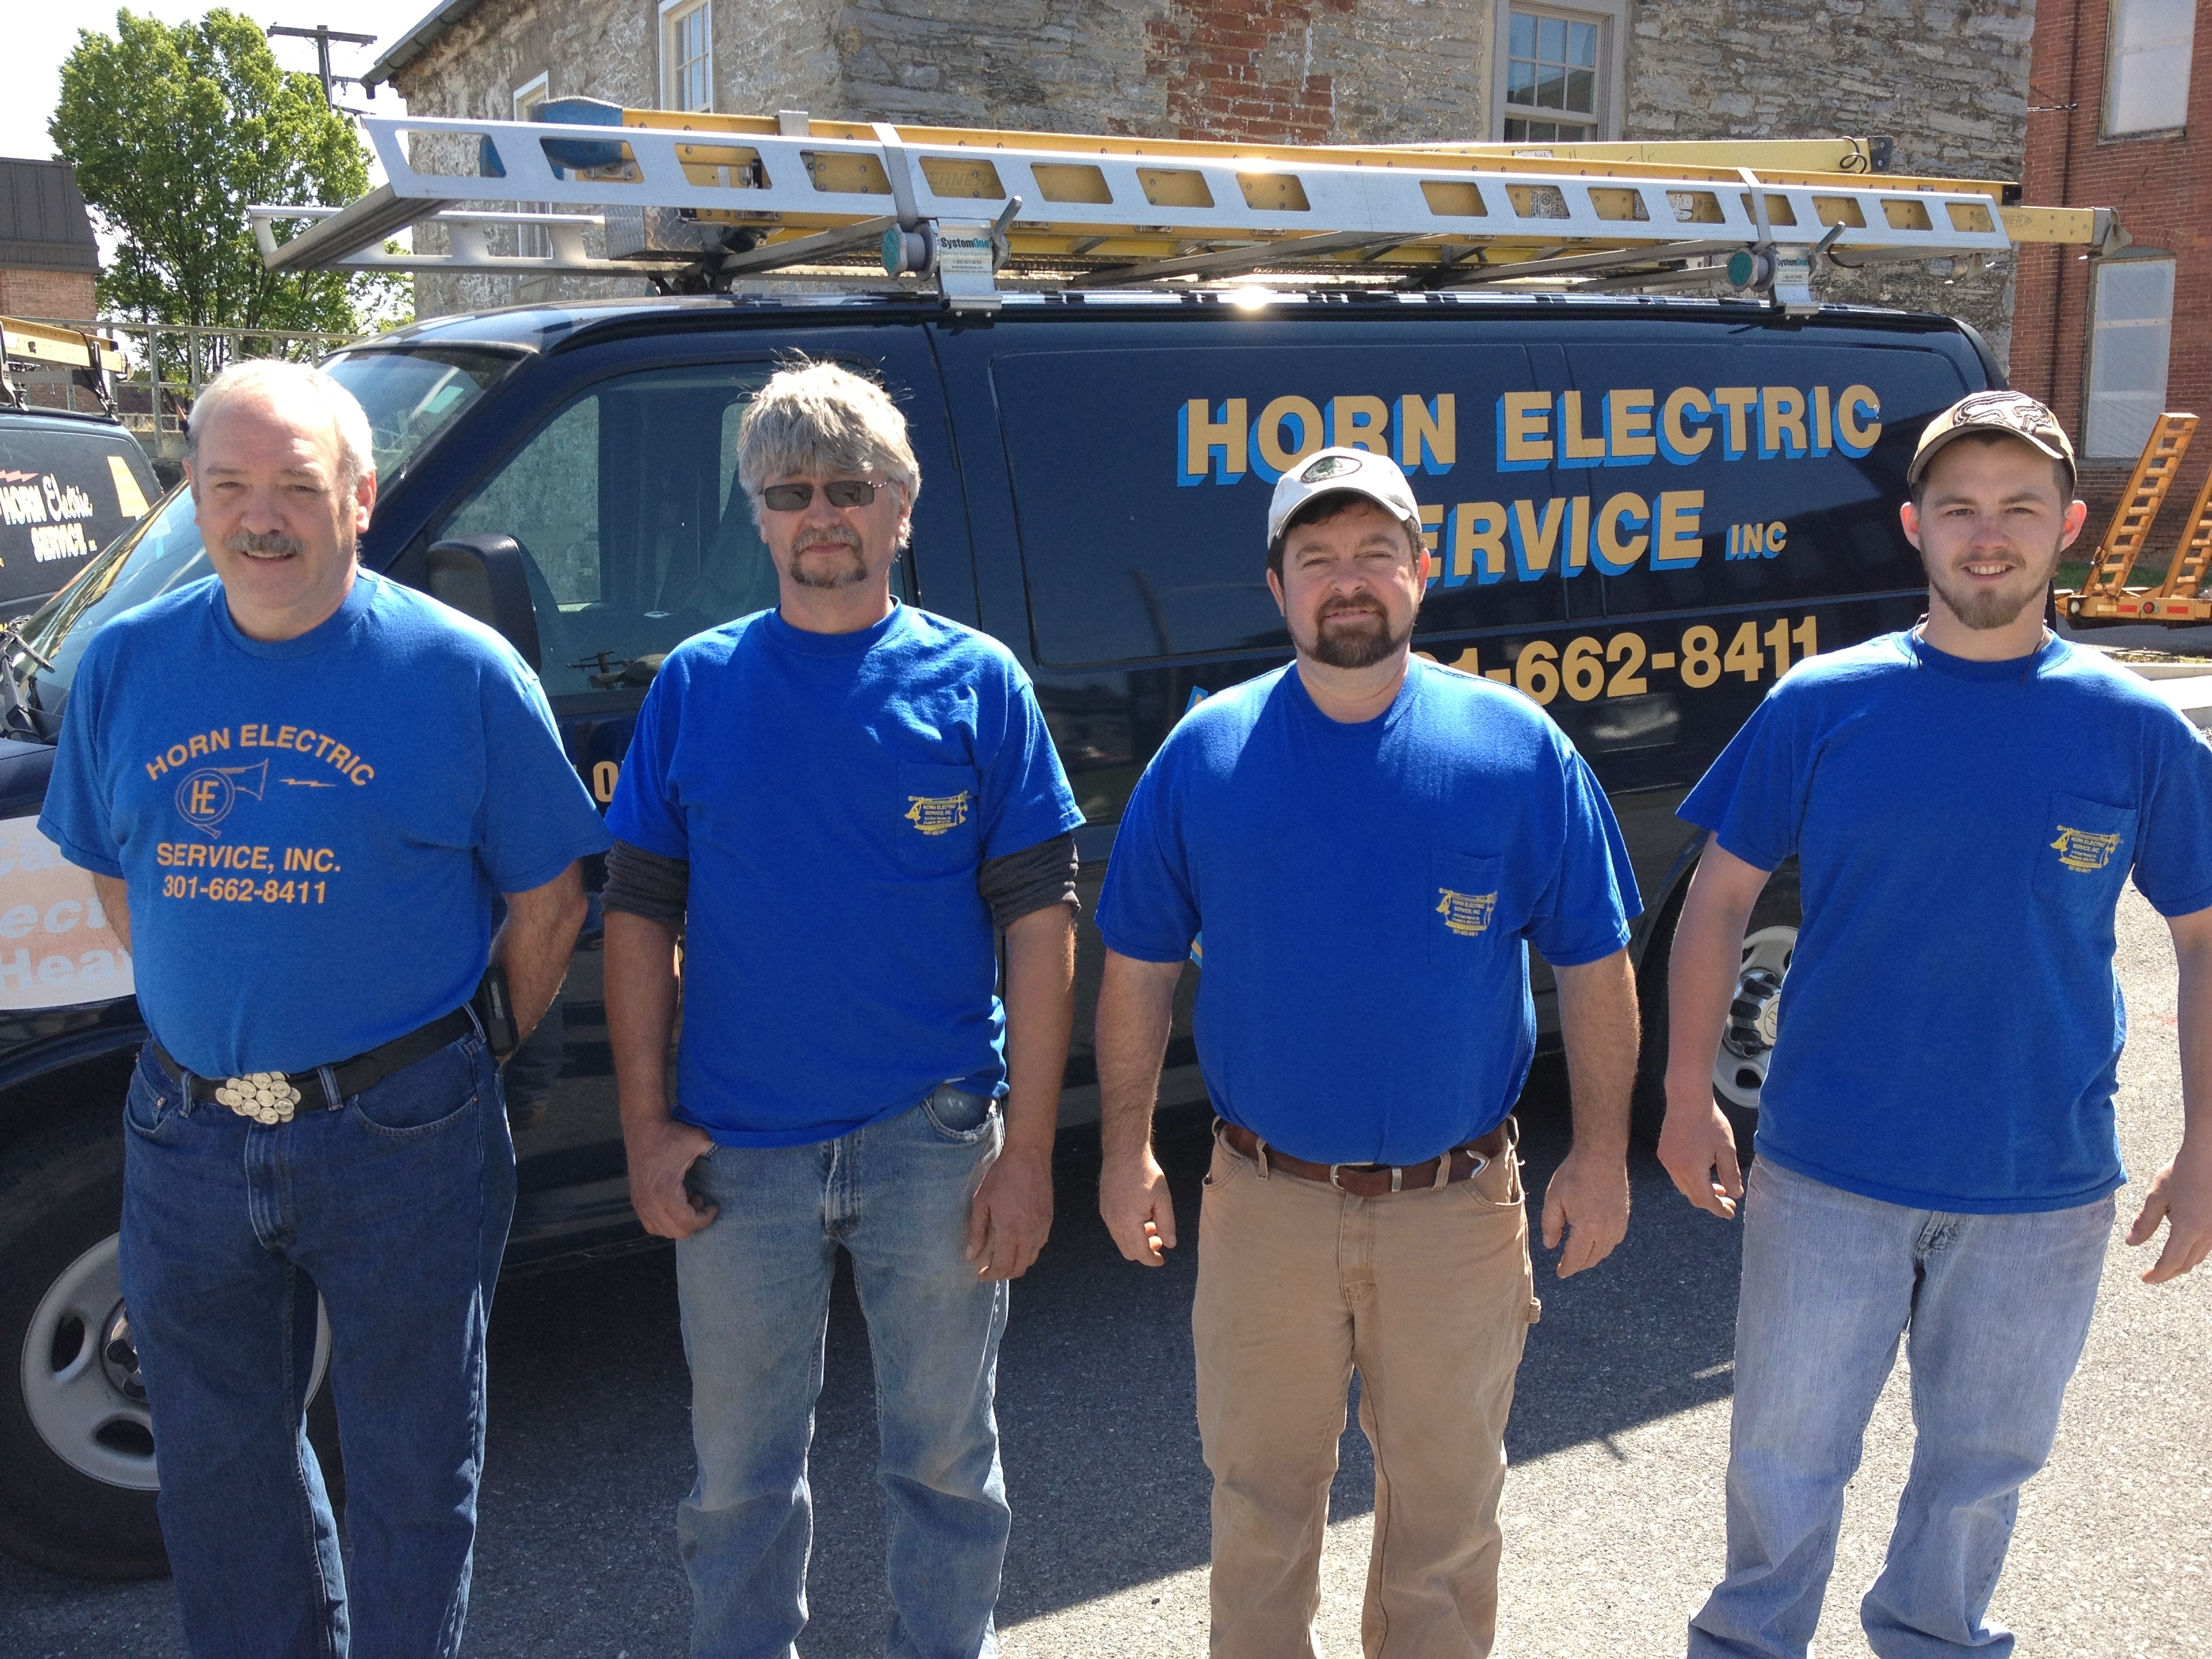 Horn Electric Service Frederick Maryland Electrician Commercial Residential Wiring 301 662 8411